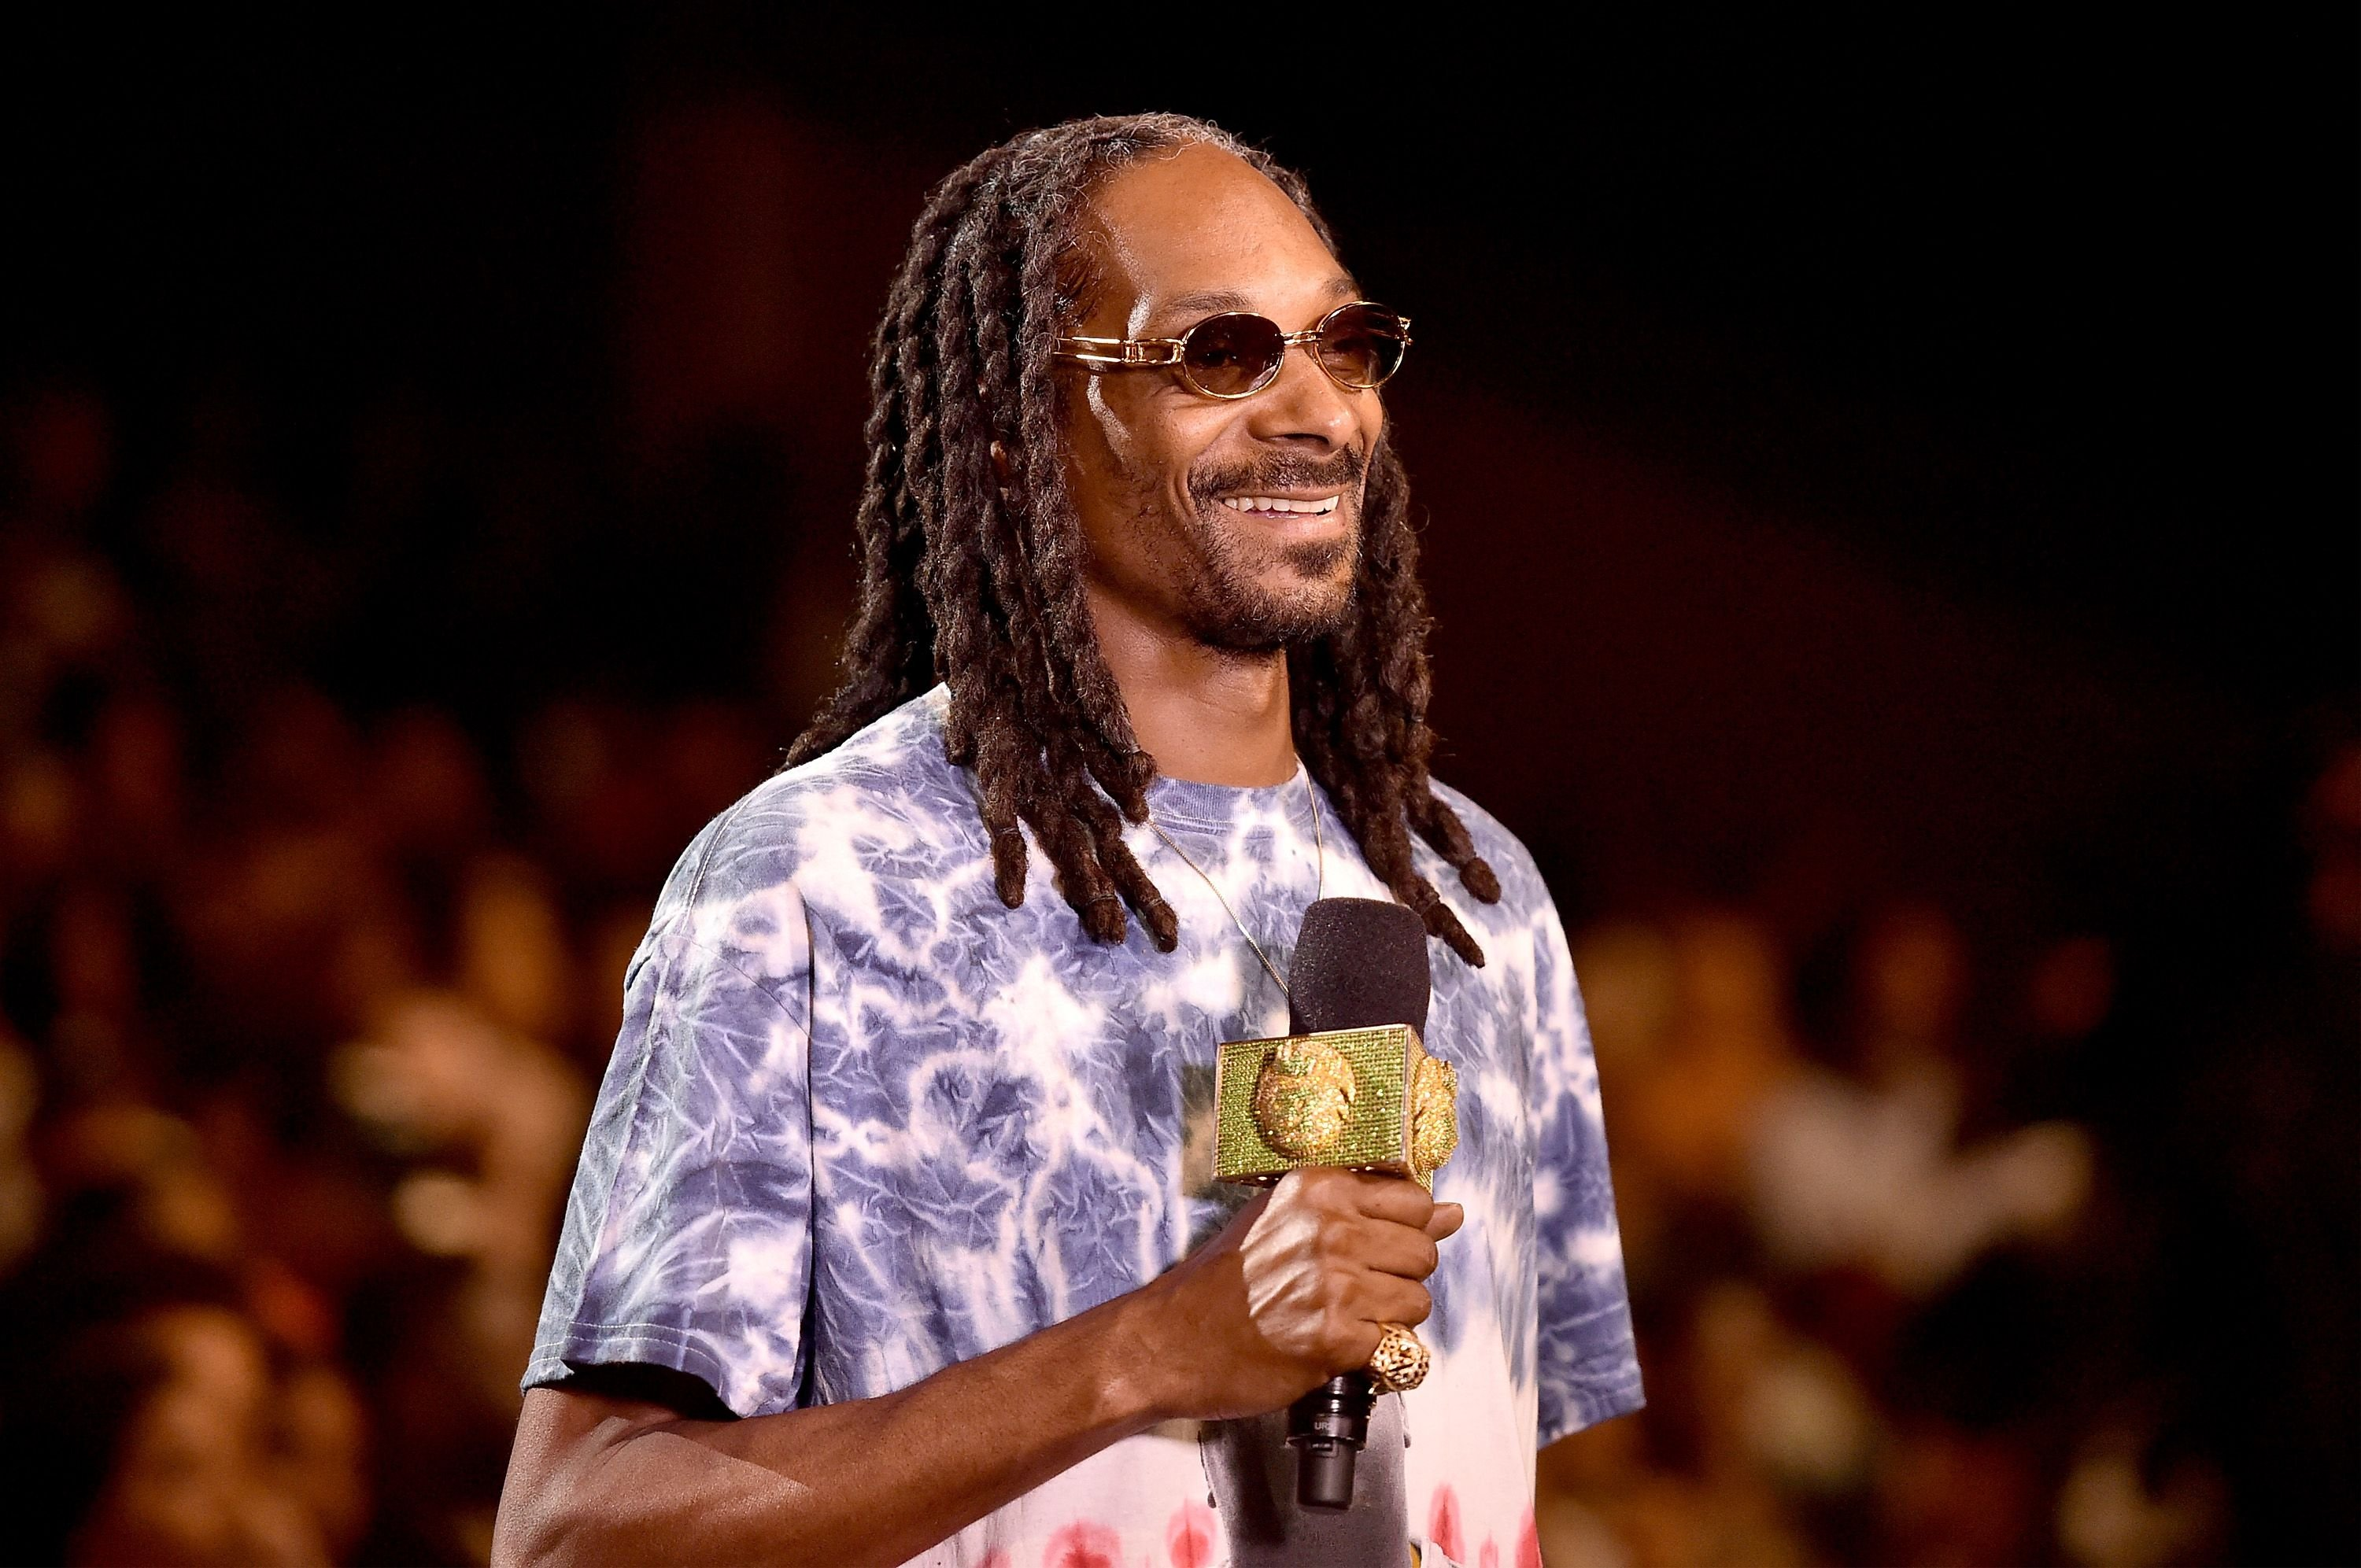 Snoop Dogg onstage at the BET Hip Hop Awards Show 2015| Photo: Getty Images